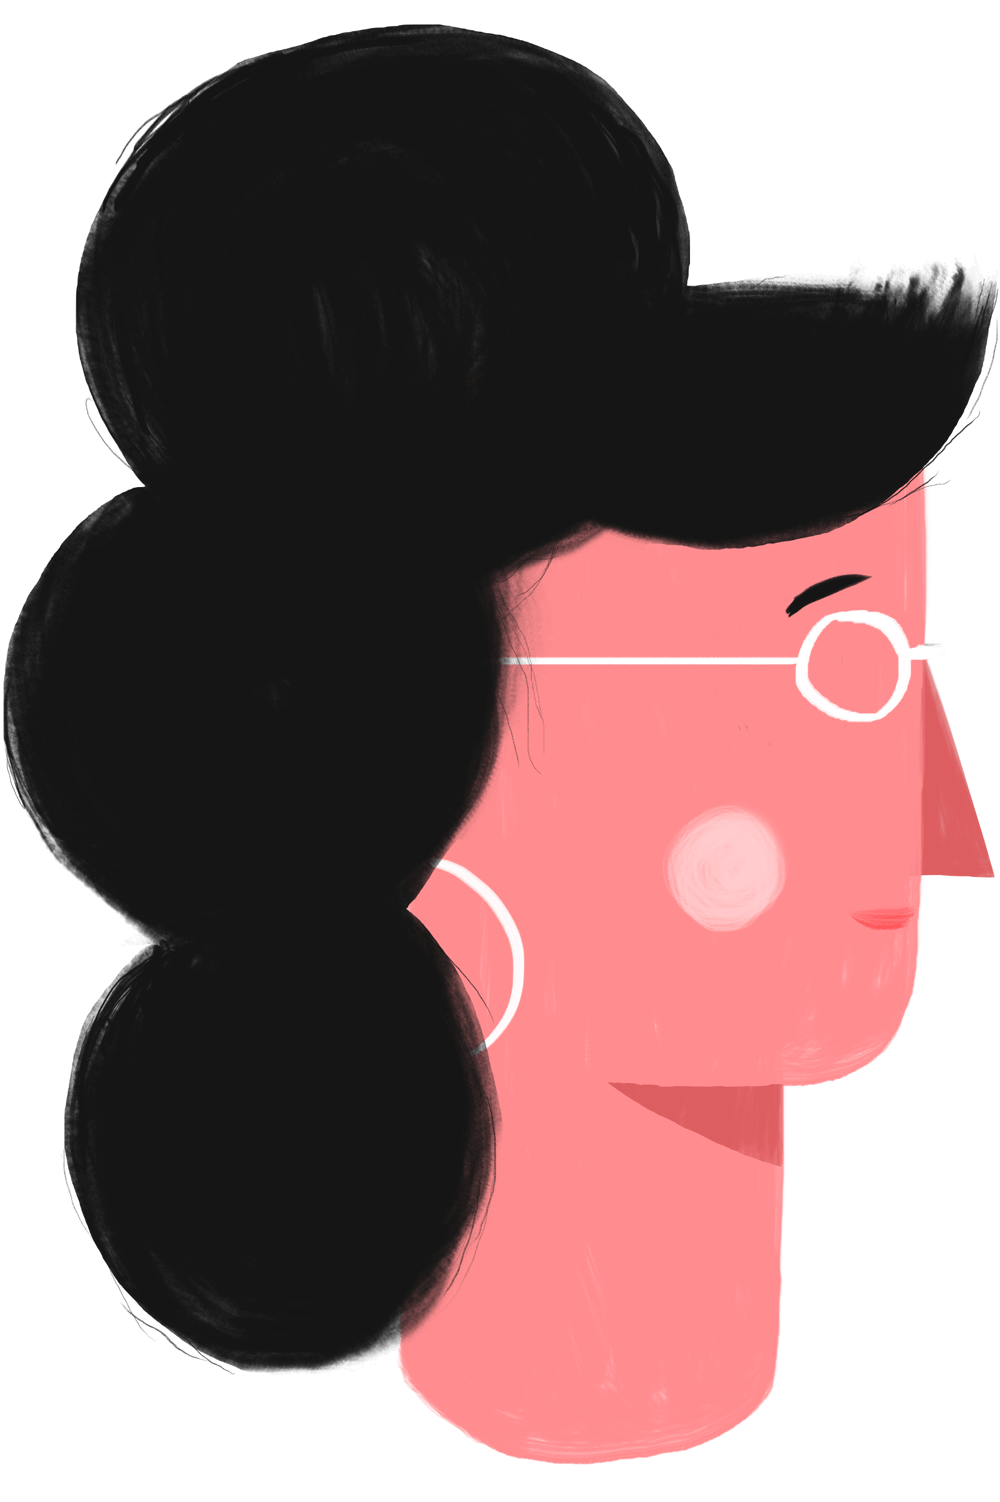 Flat, 2D illustration of a woman's head